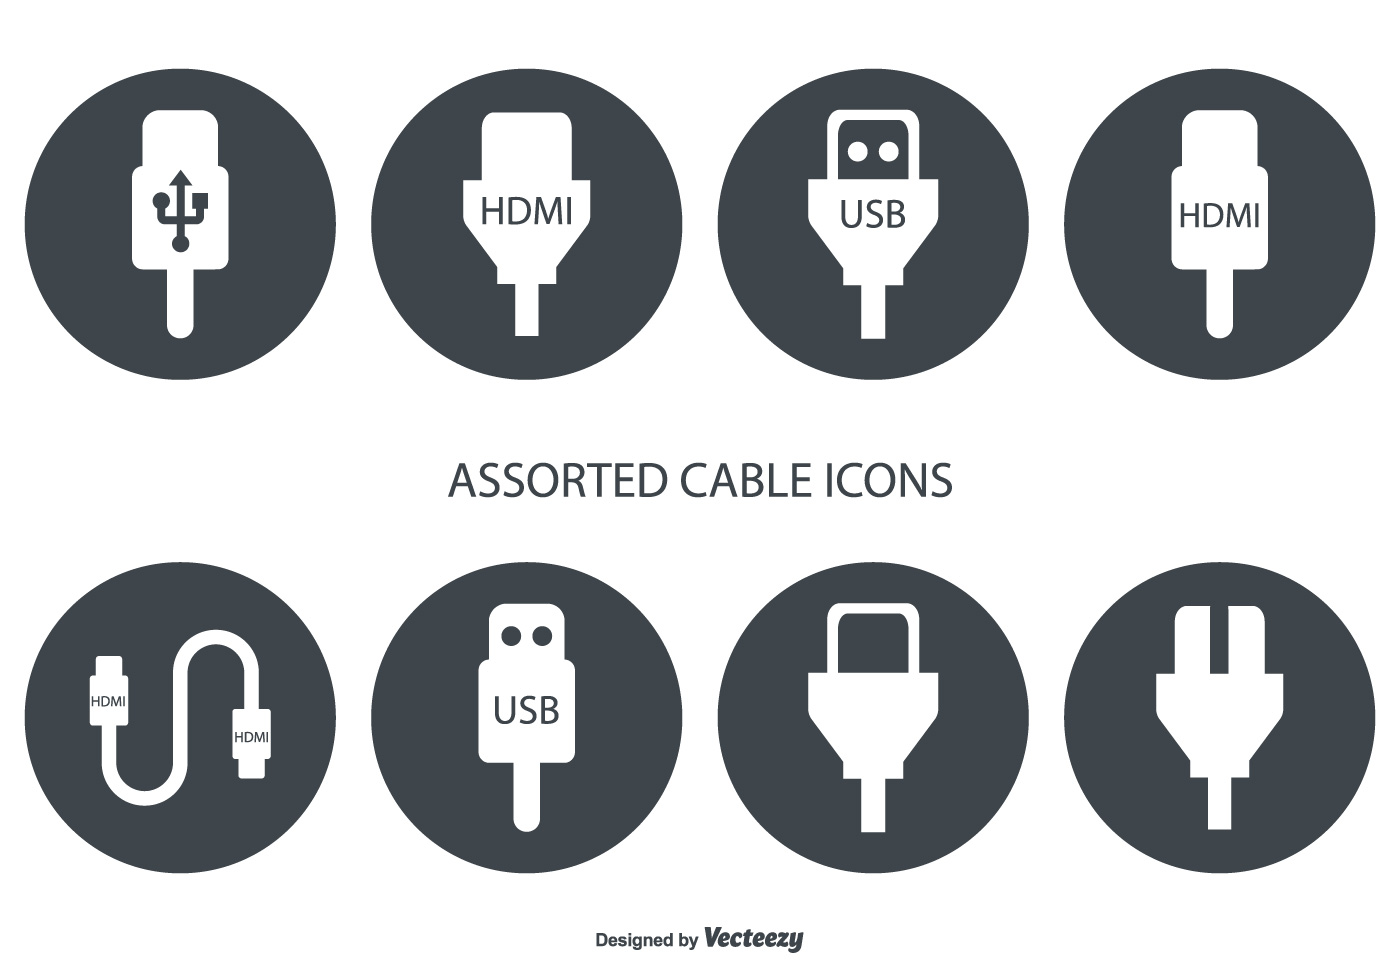 assorted hdmi and usb cable vector icons download free vectors clipart graphics vector art https www vecteezy com vector art 106276 assorted hdmi and usb cable vector icons